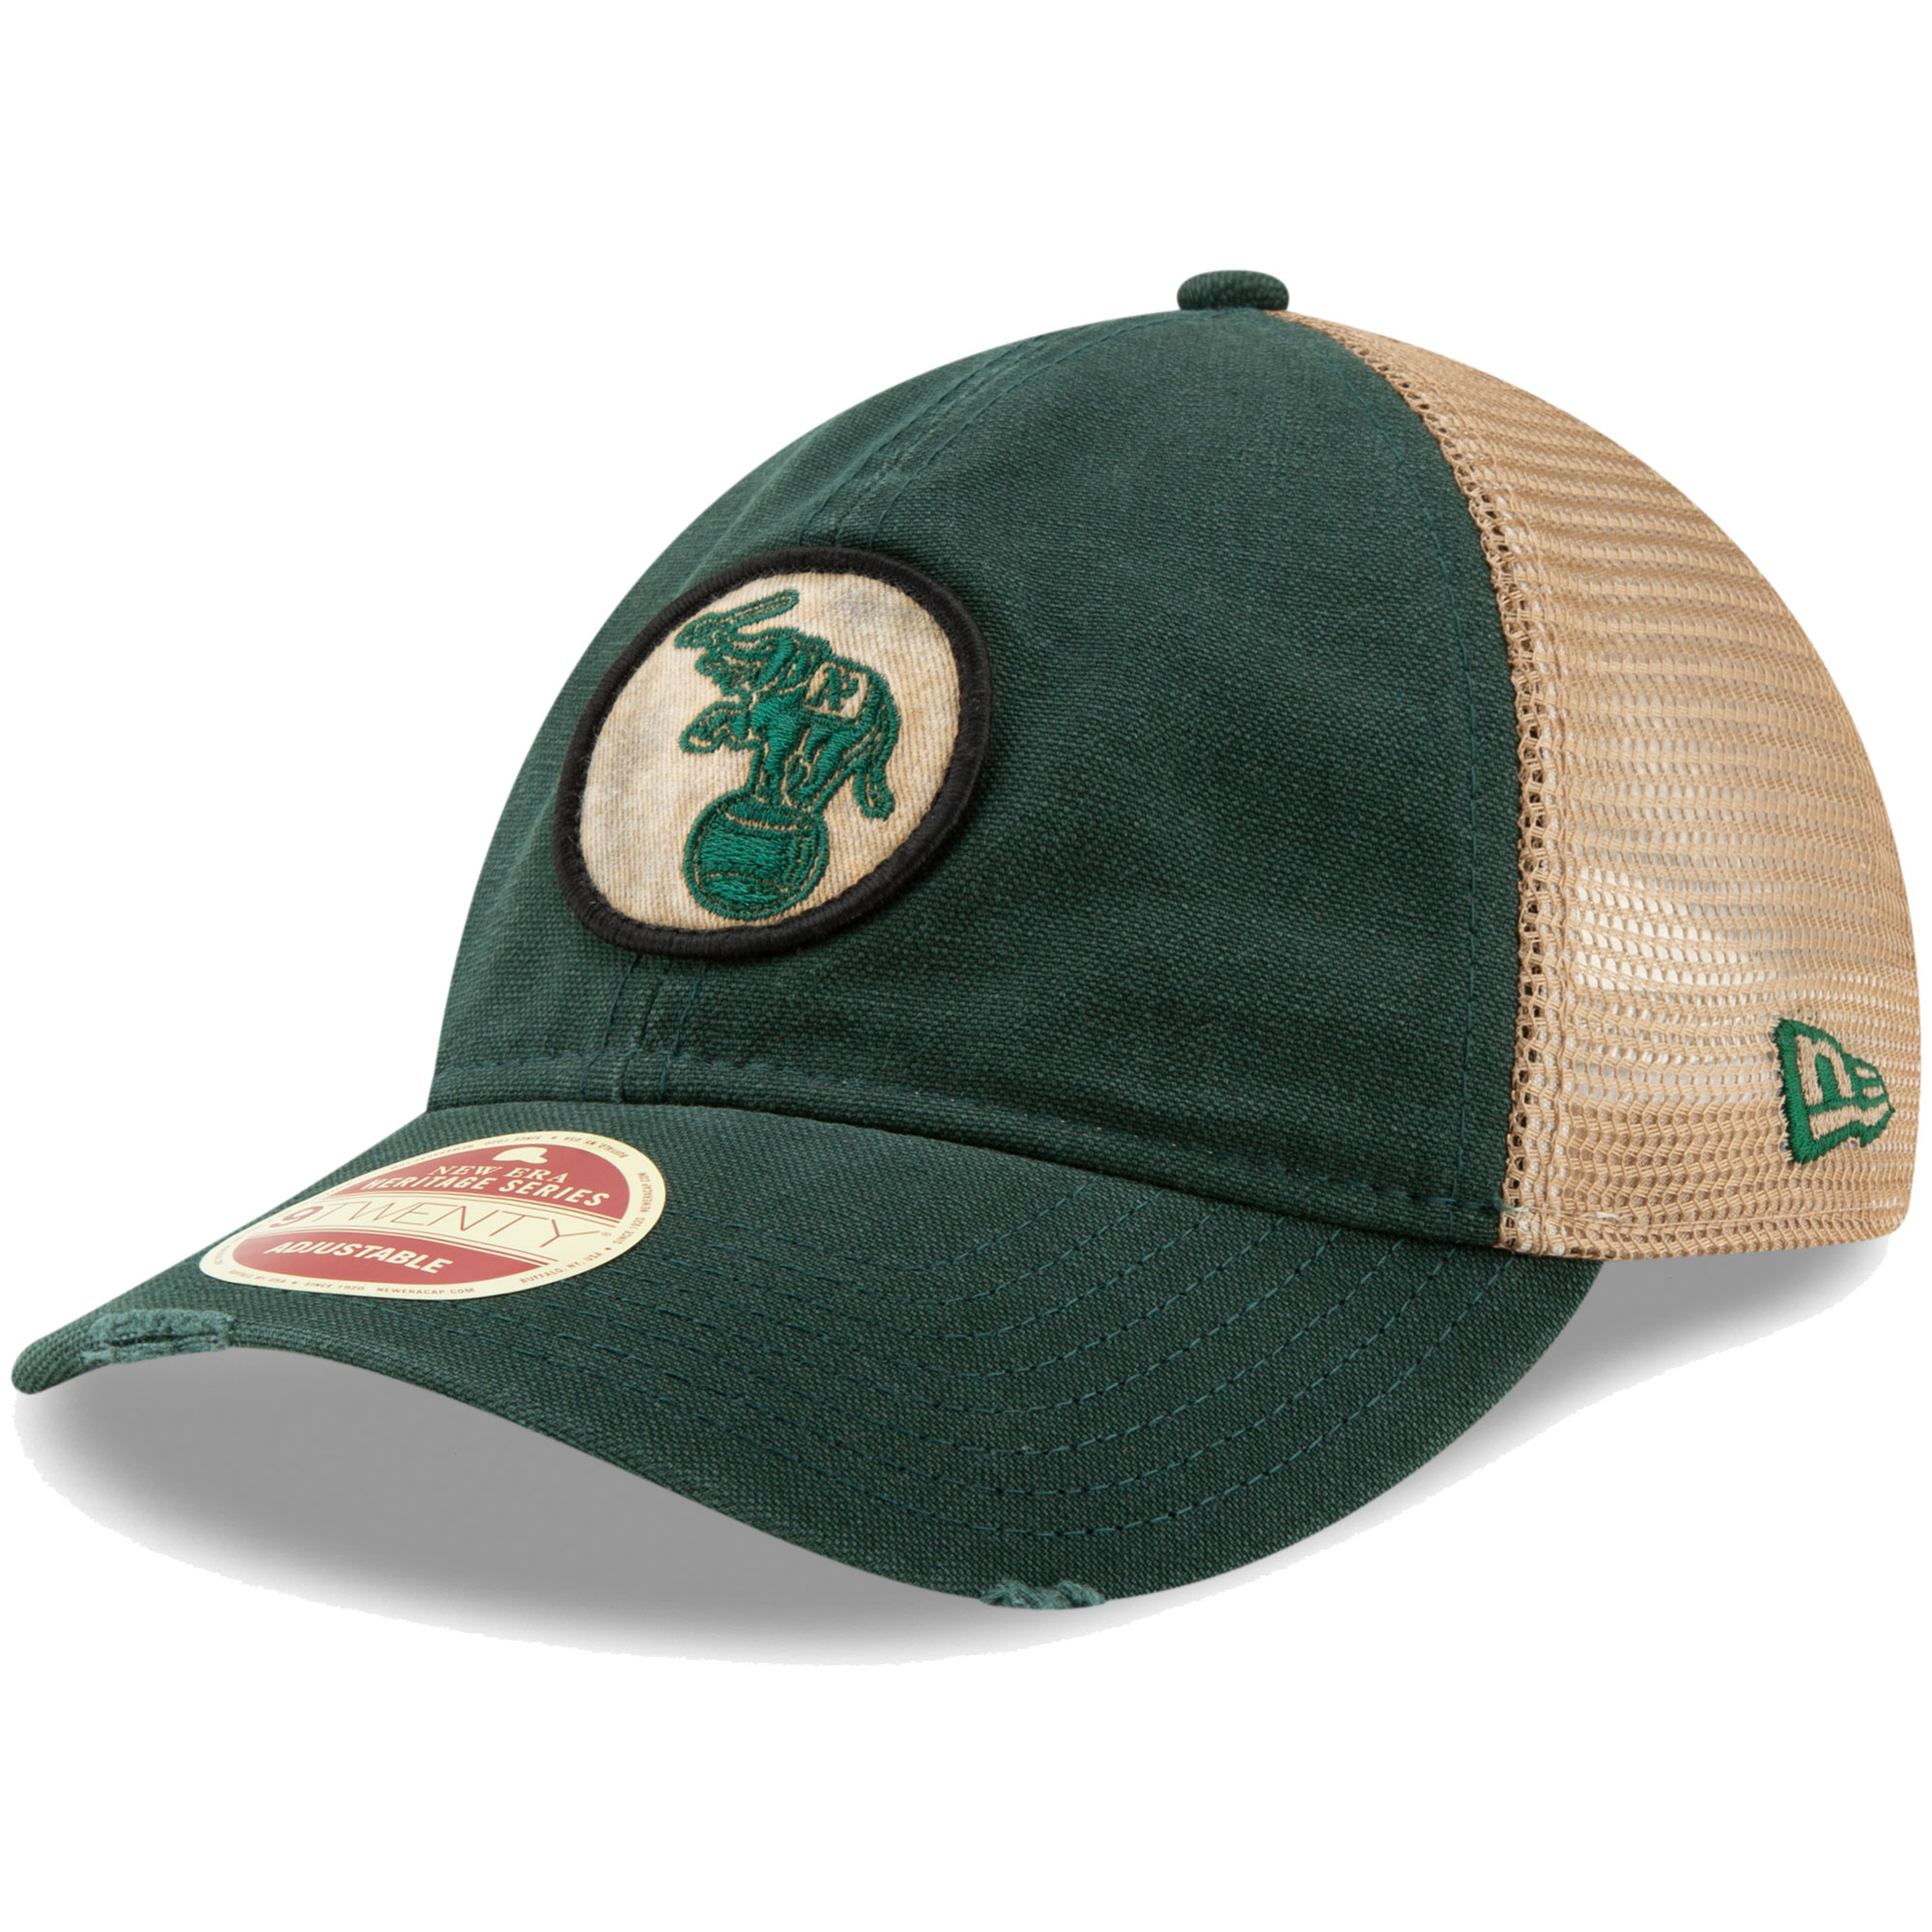 Oakland Athletics New Era Cooperstown Collection Front Patched Trucker 9TWENTY Adjustable Hat - Green - OSFA